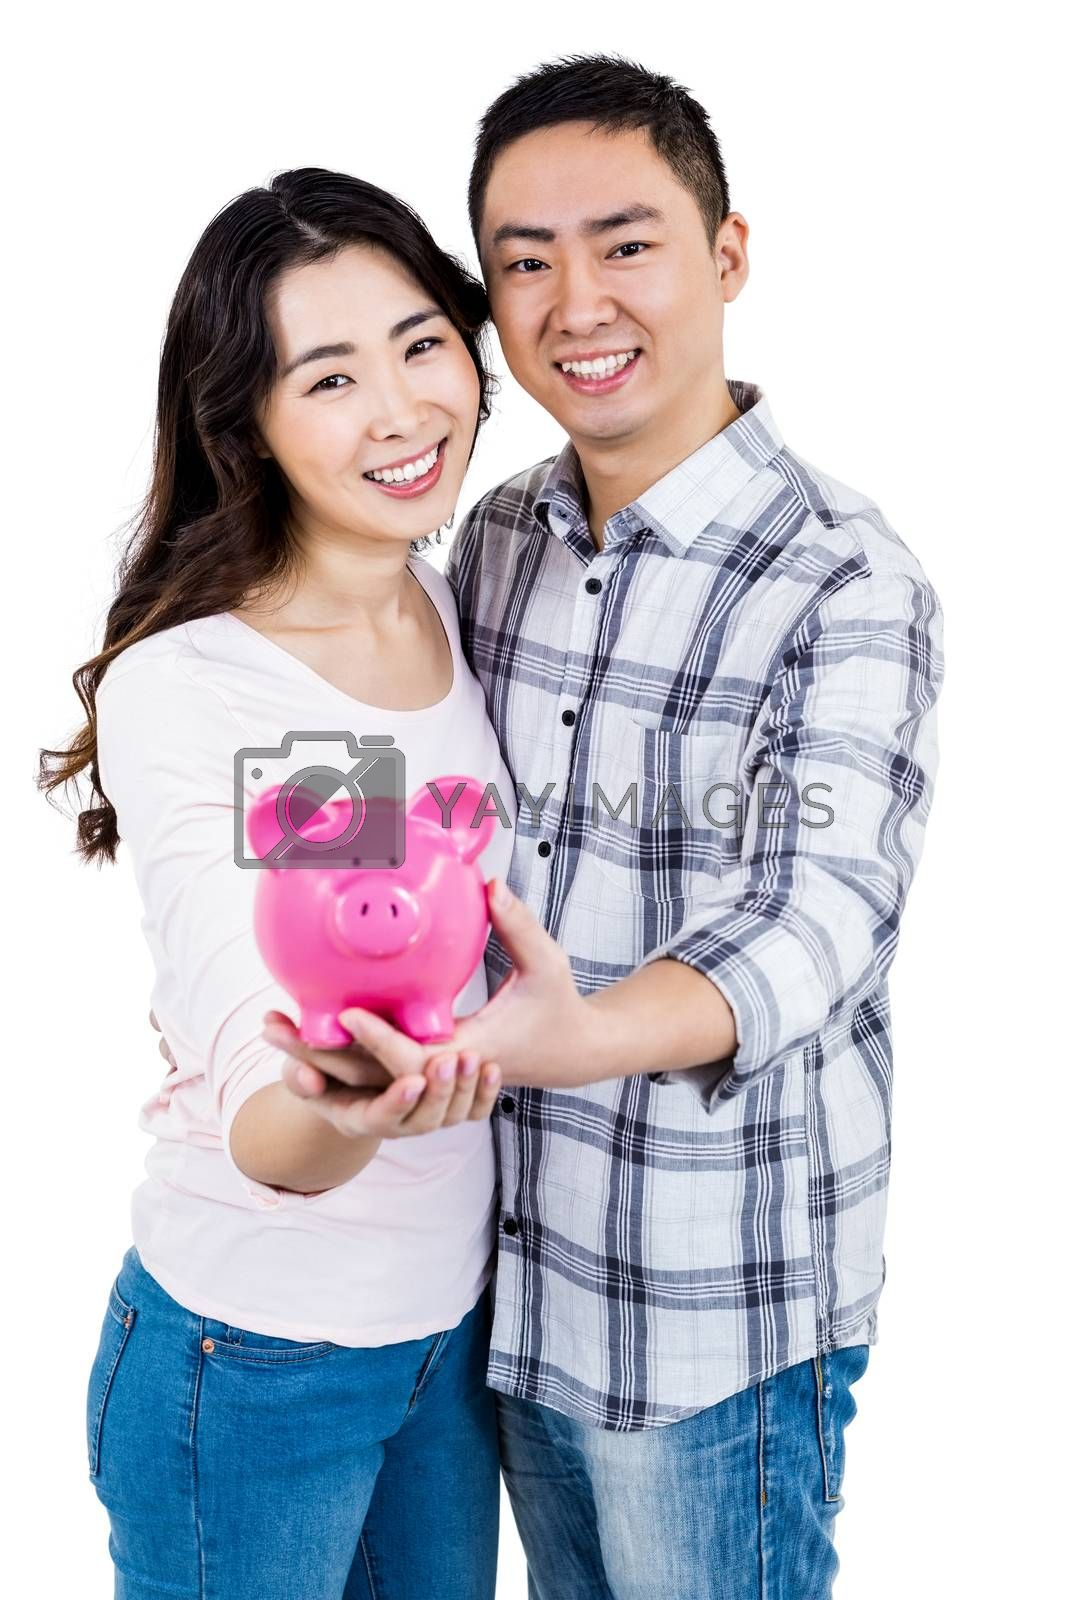 Portrait of happy smiling couple holding piggy bank against white background